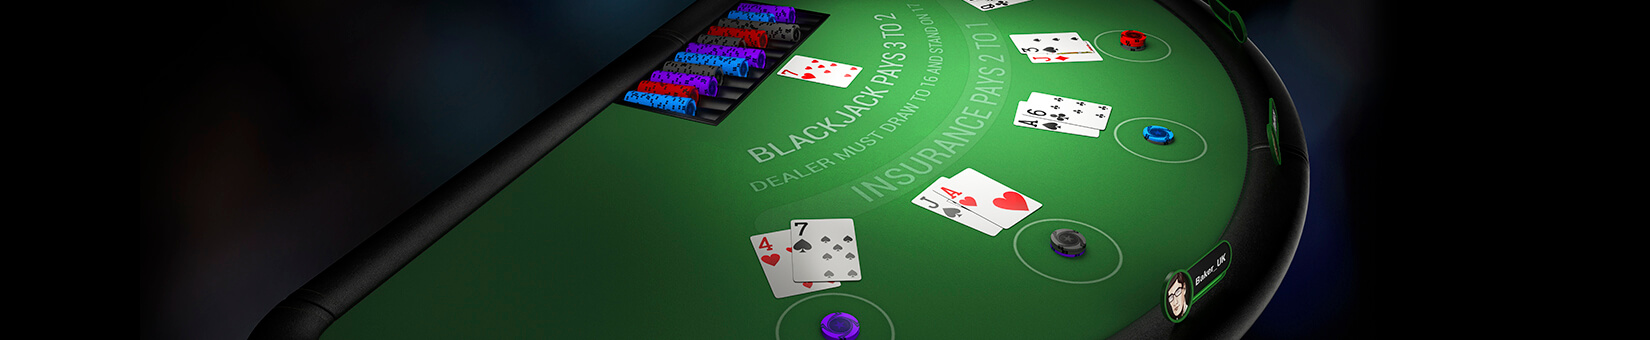 Probability of four of a kind in texas holdem